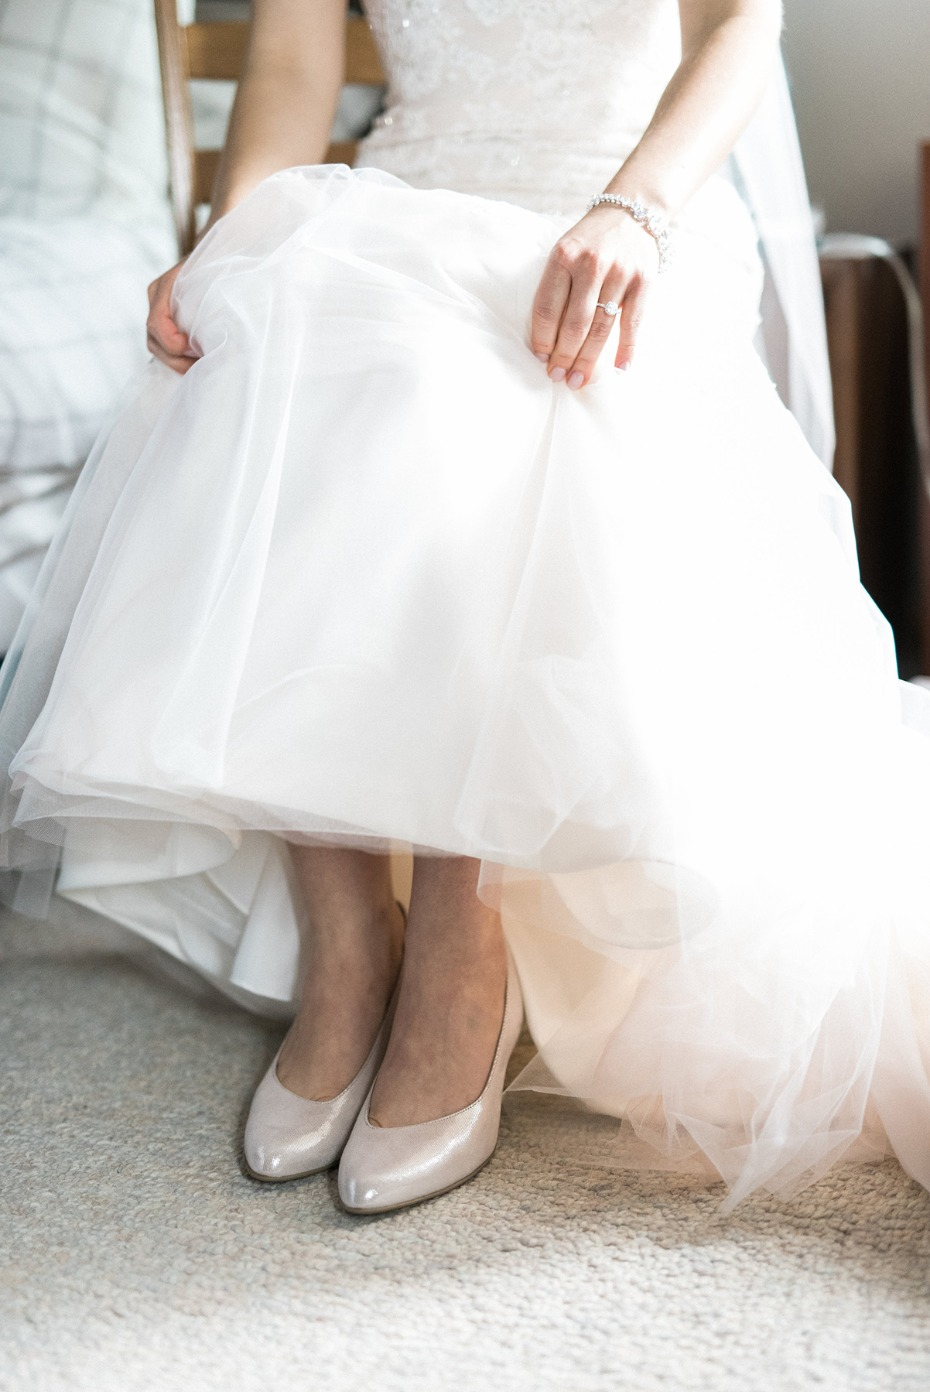 Simple wedding heels